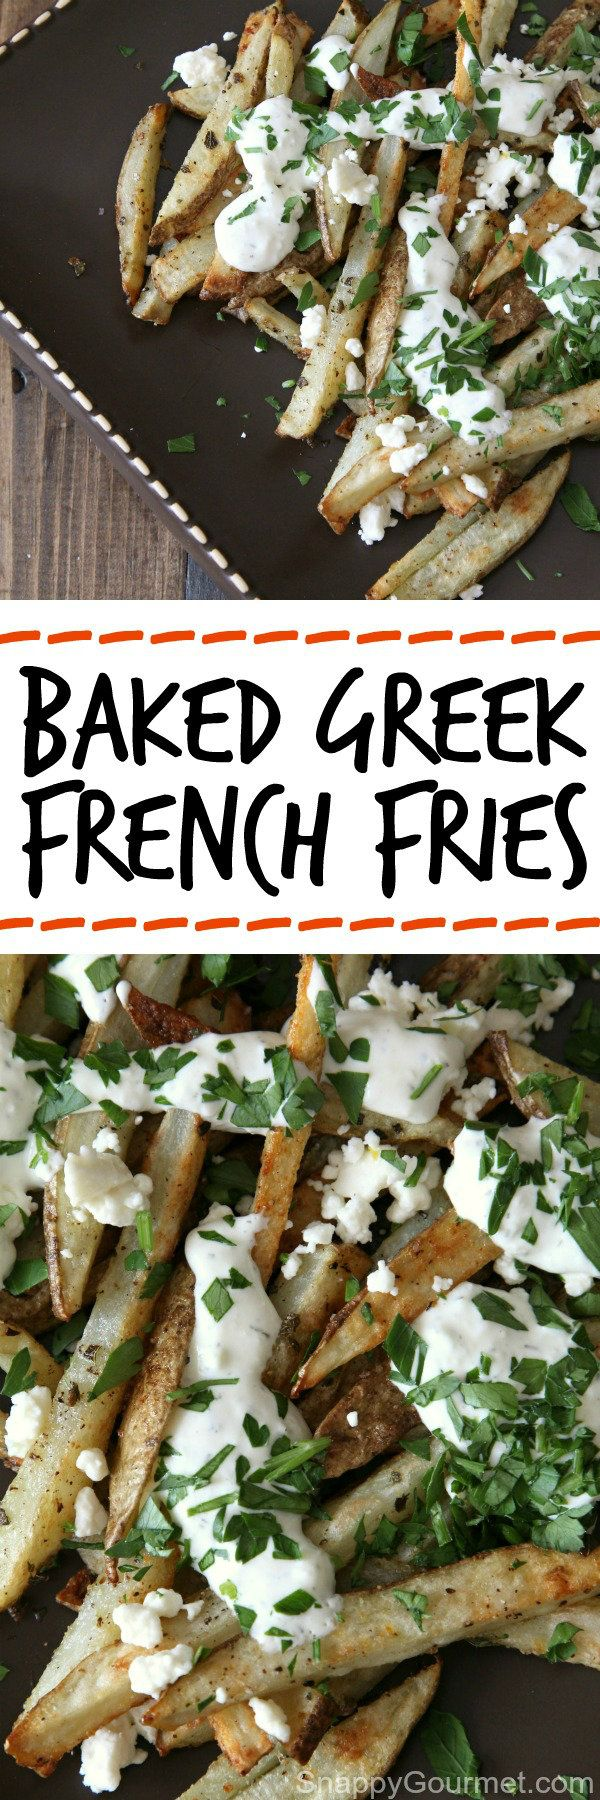 Baked Greek French Fries recipe, easy crispy homemade french fries made in the oven and topped with tzatziki and feta. Yum! SnappyGourmet.com